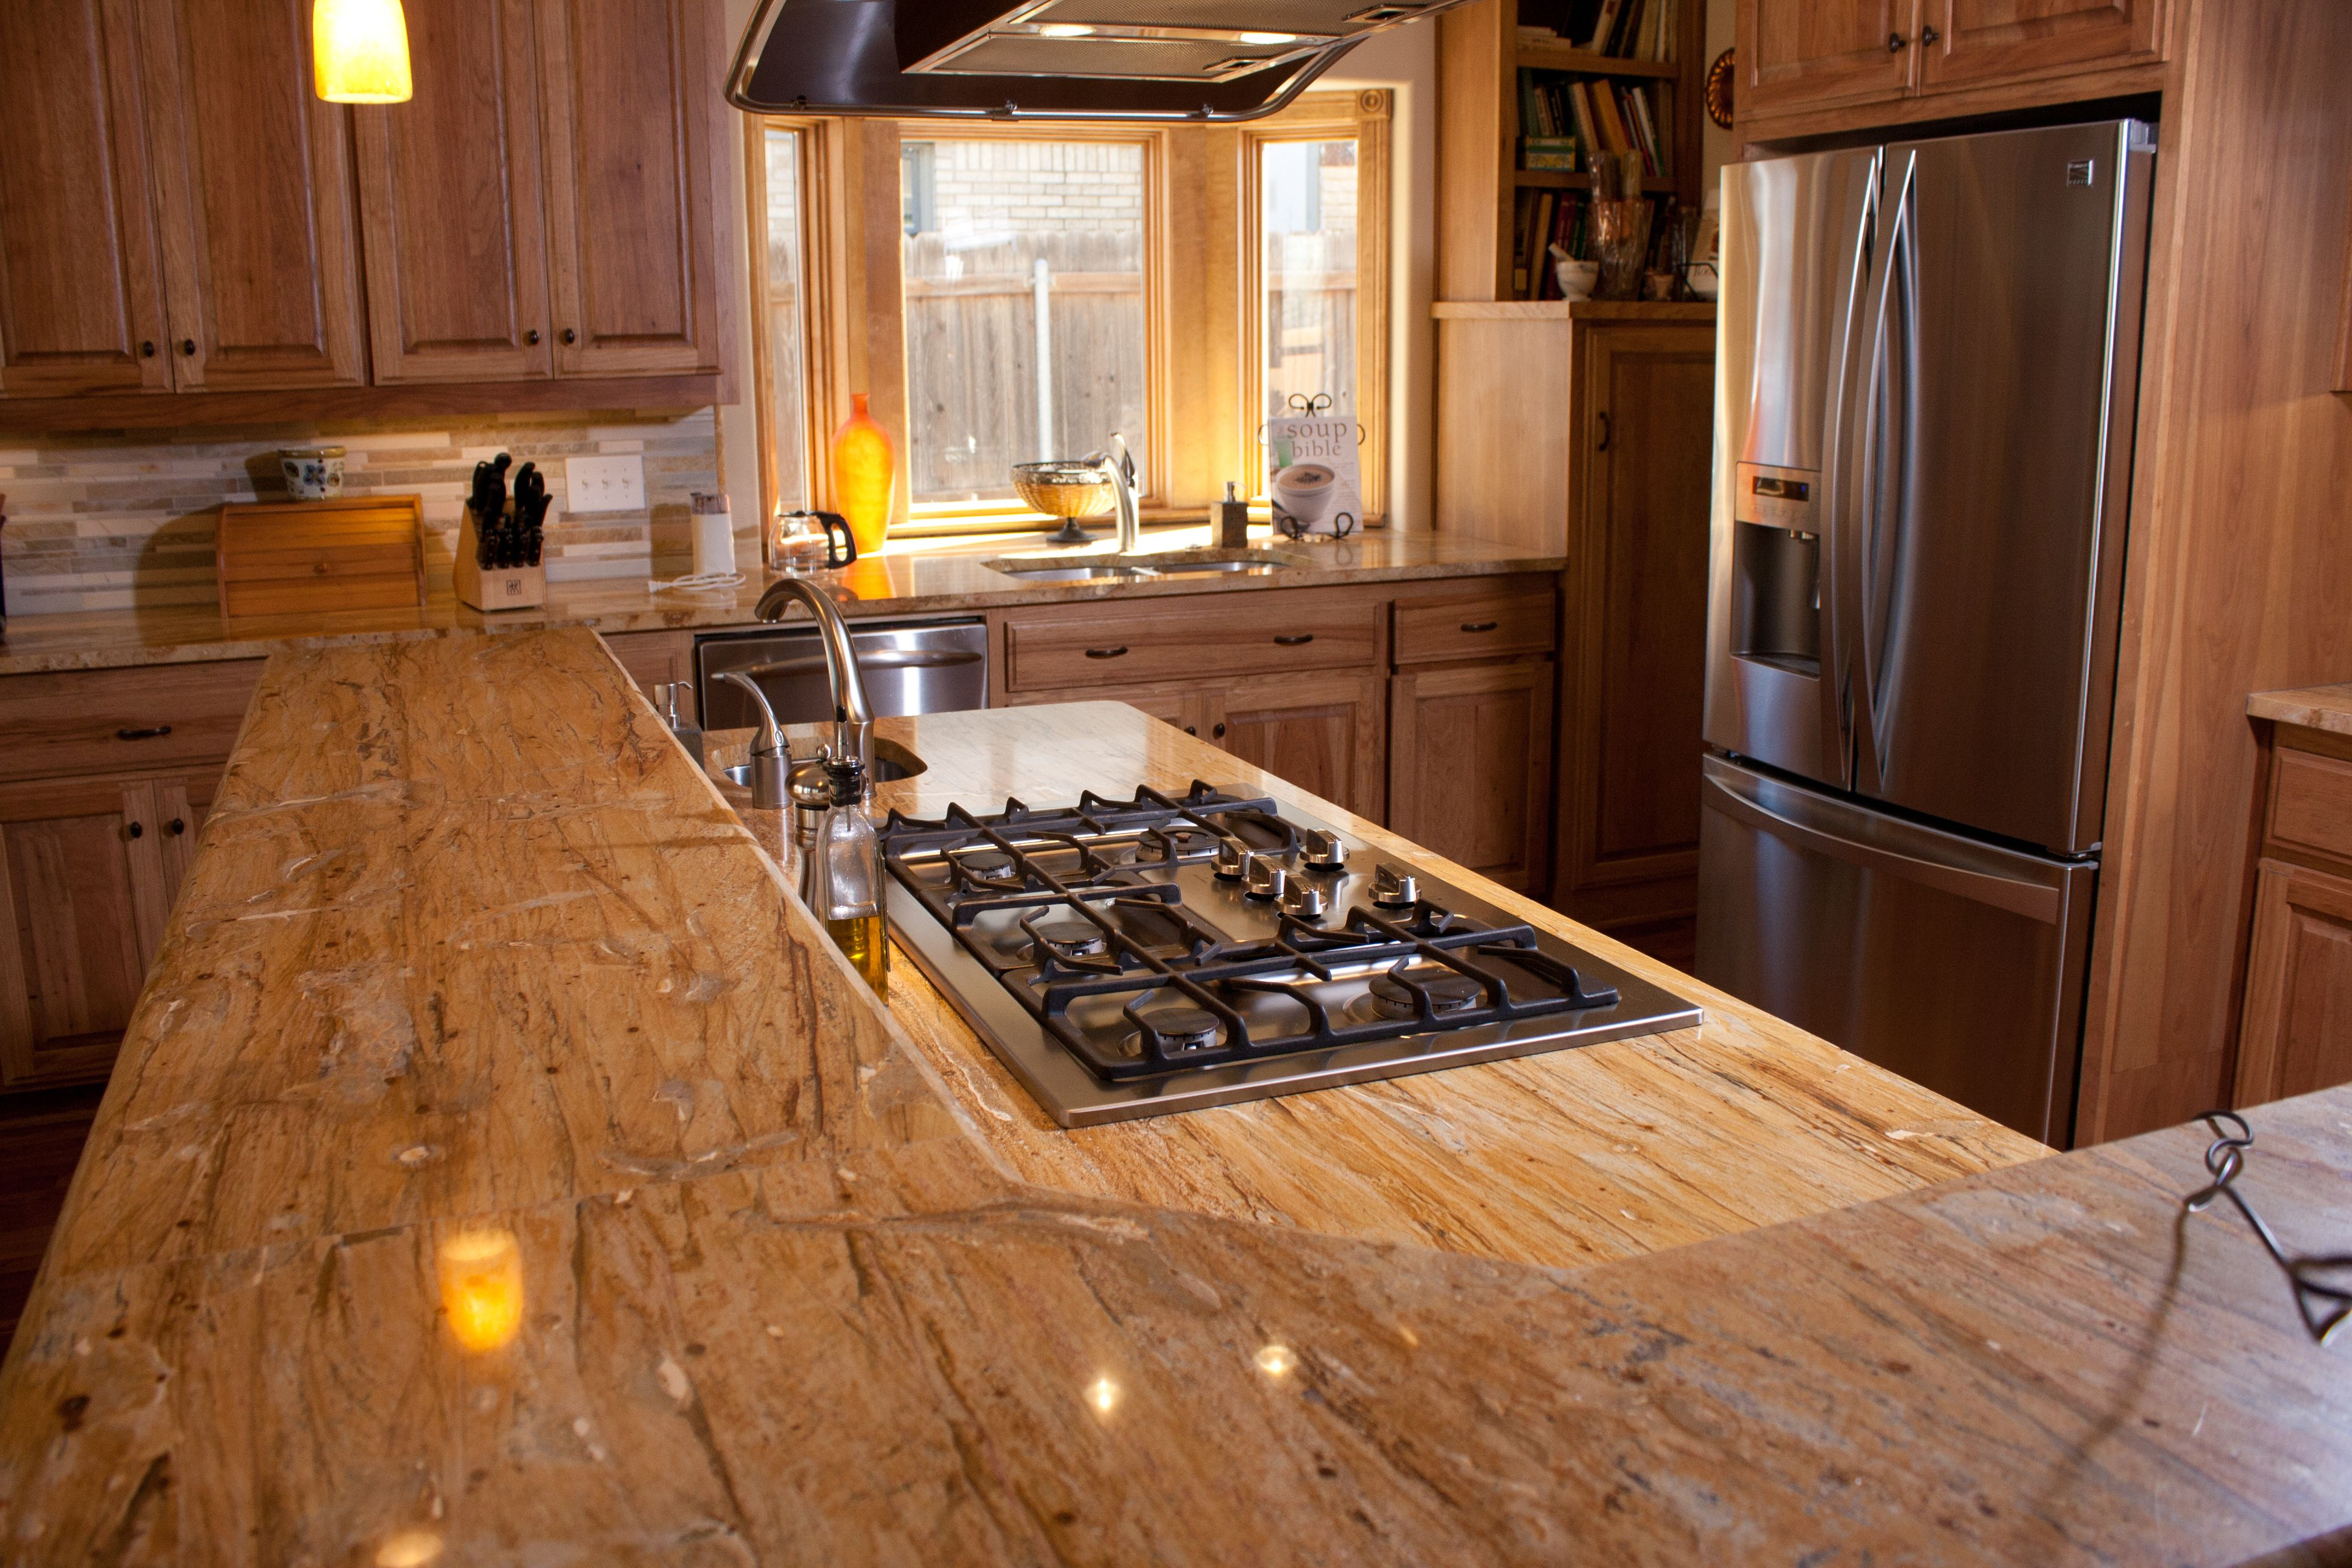 Furniture Granite Stone Material For Countertop Options In Modern